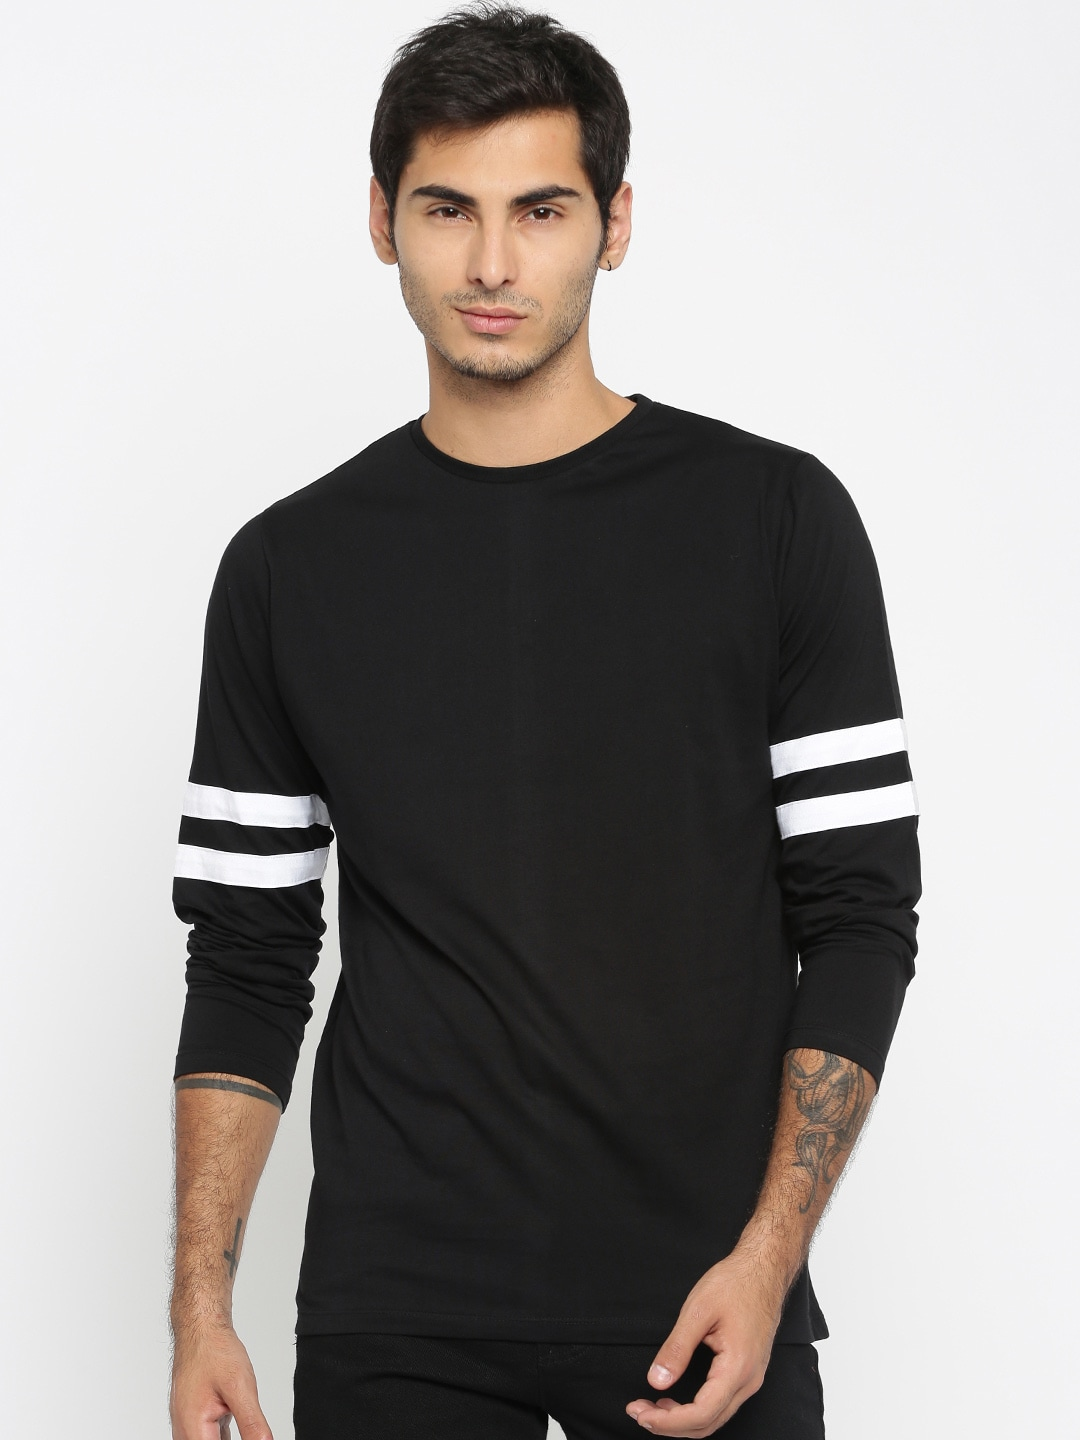 Men T-shirts - Buy T-shirts for Men Online in India - Myntra